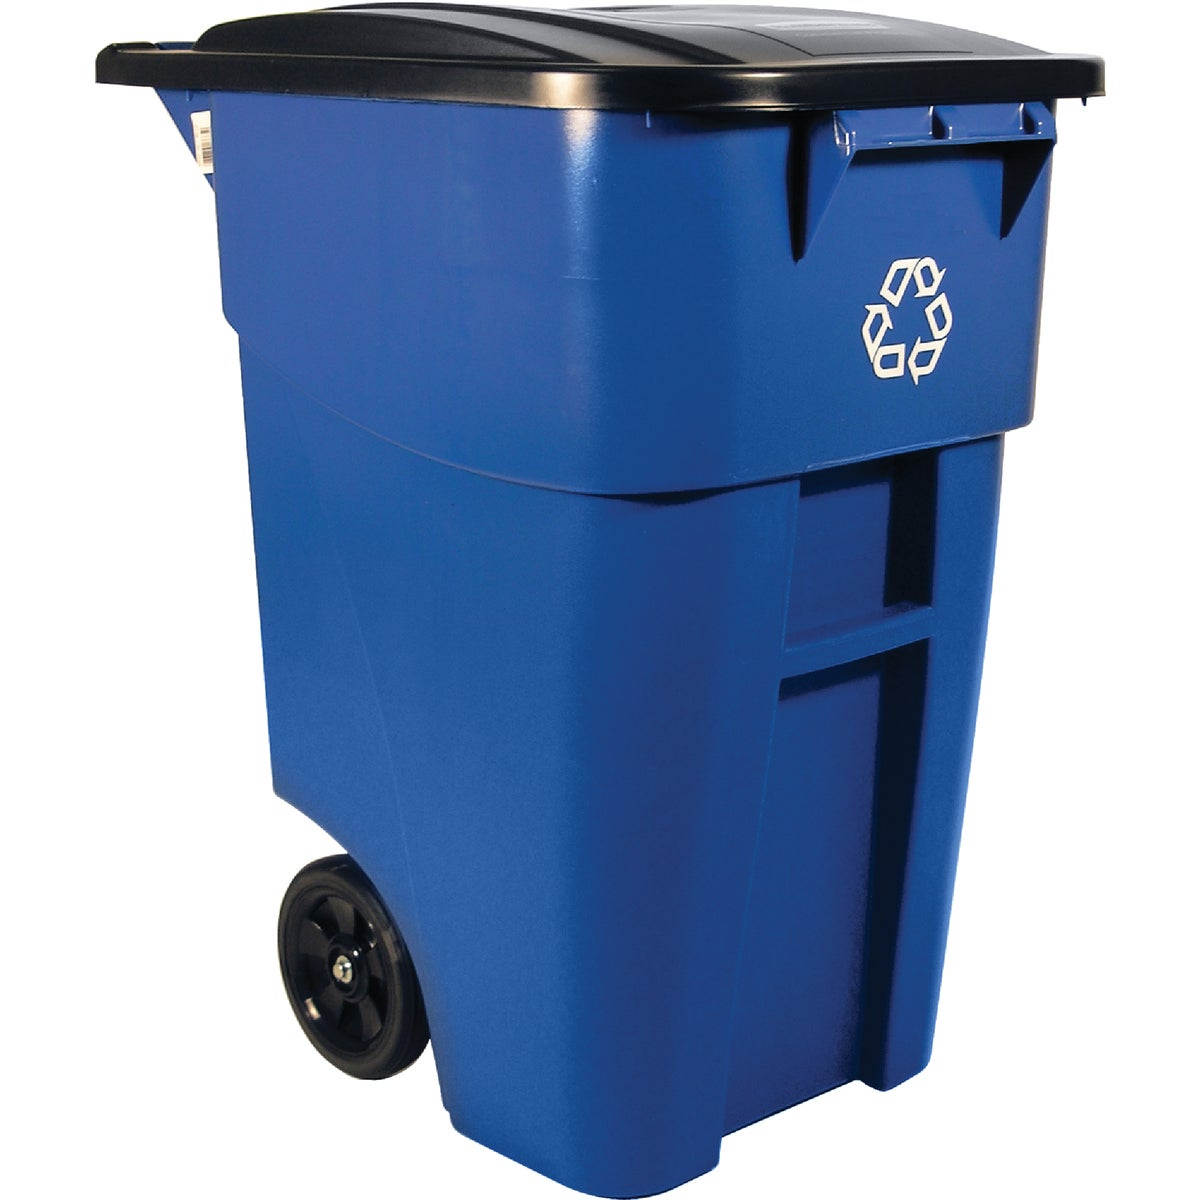 50GAL RECYCLING ROLLOUT - FG9W2773BLUE by Rubbermaid Comm Prod